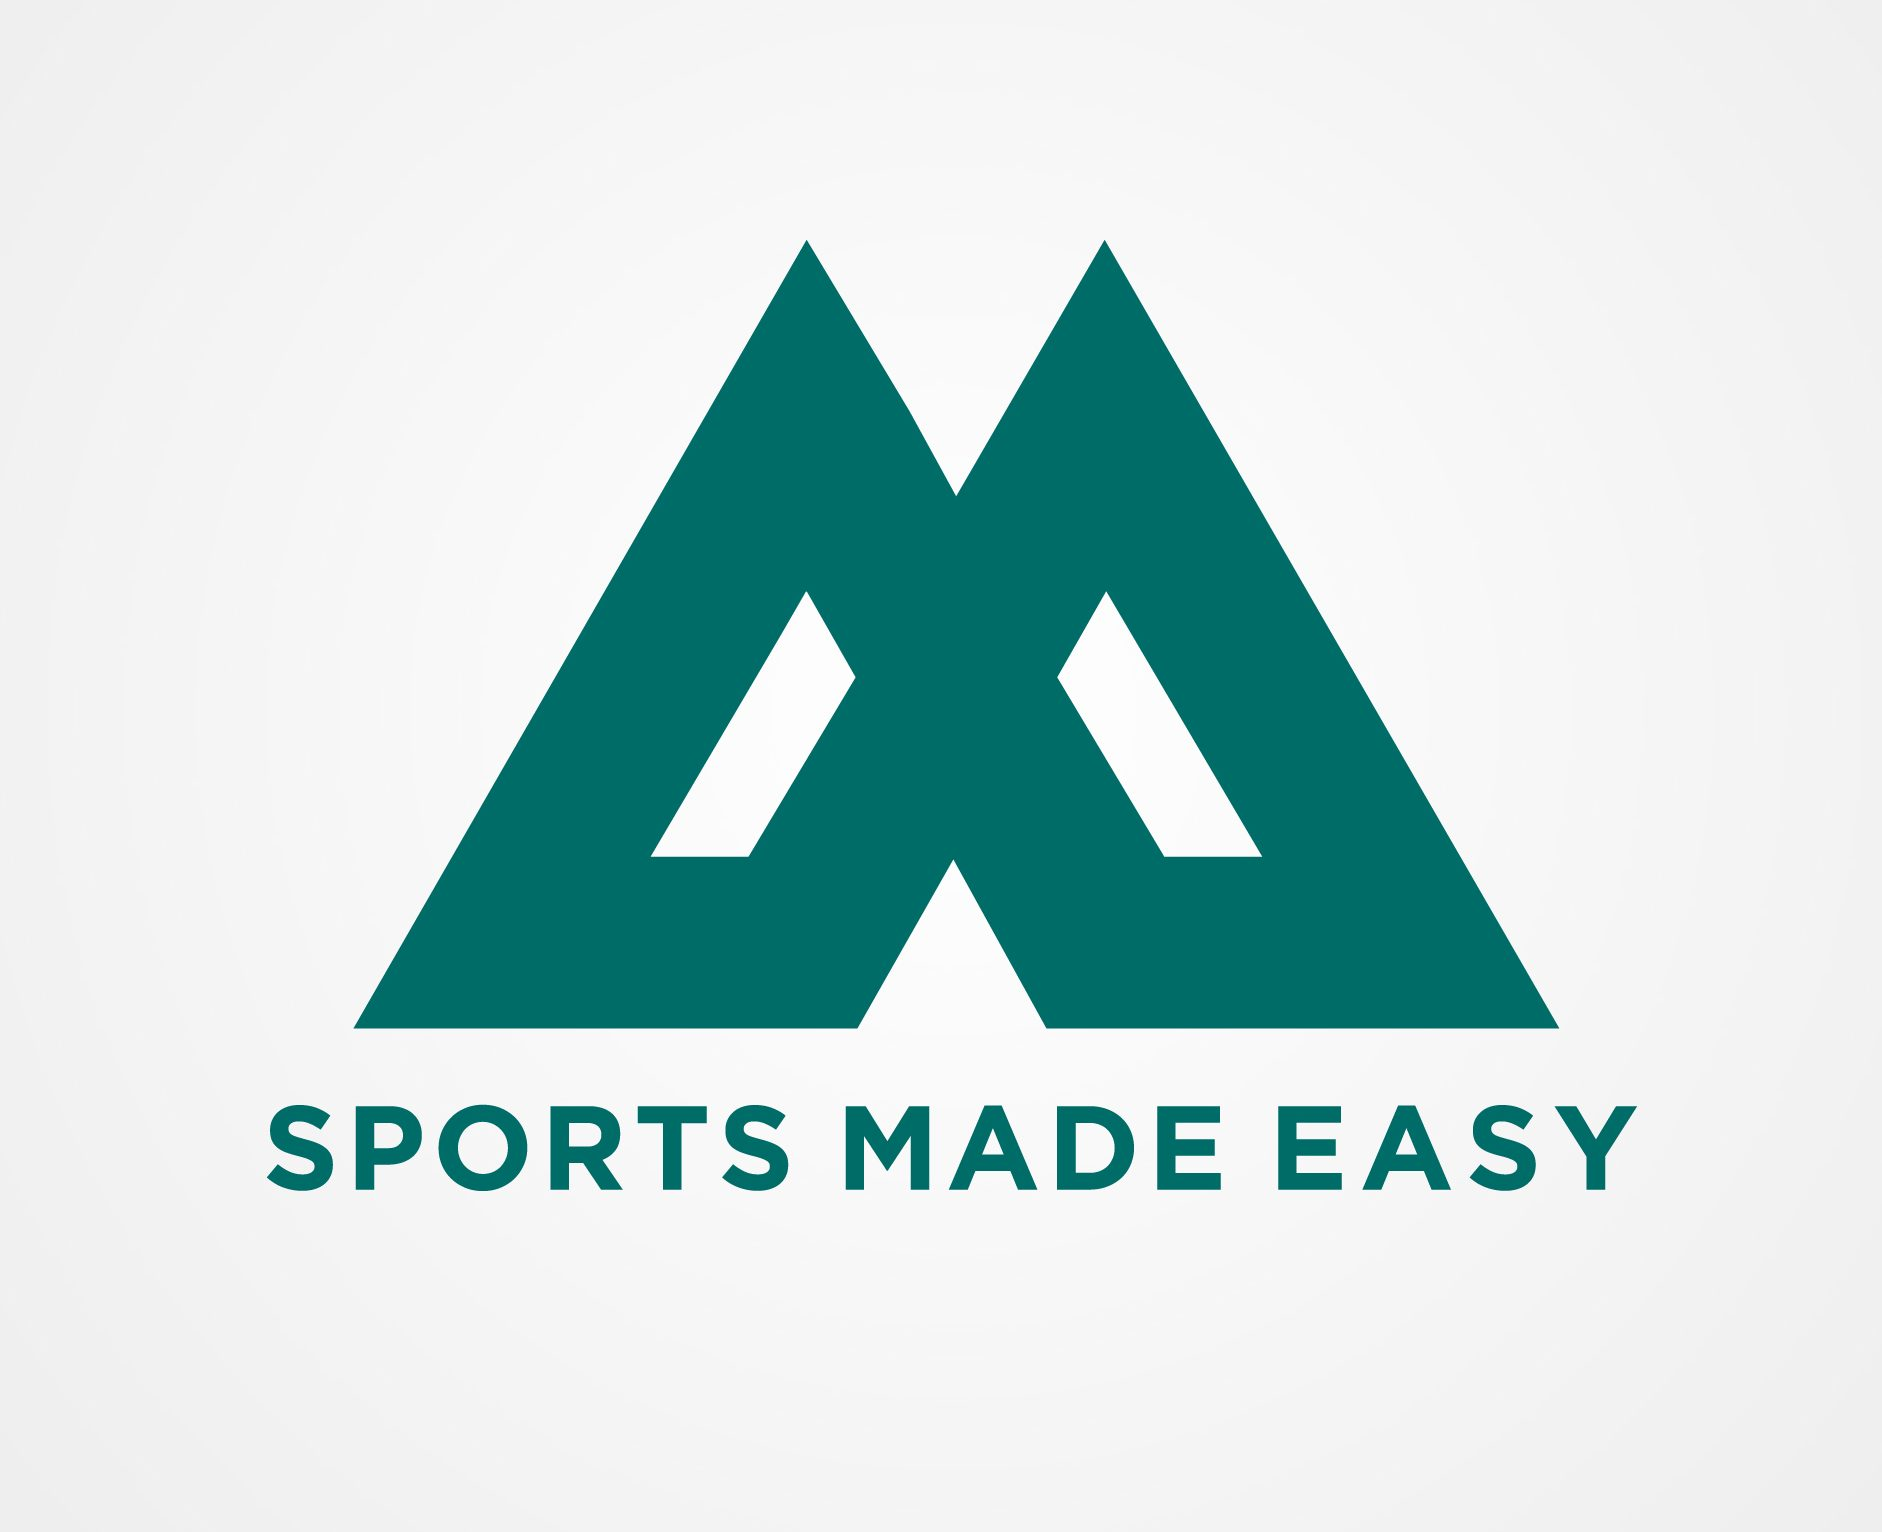 Sports Made Easy